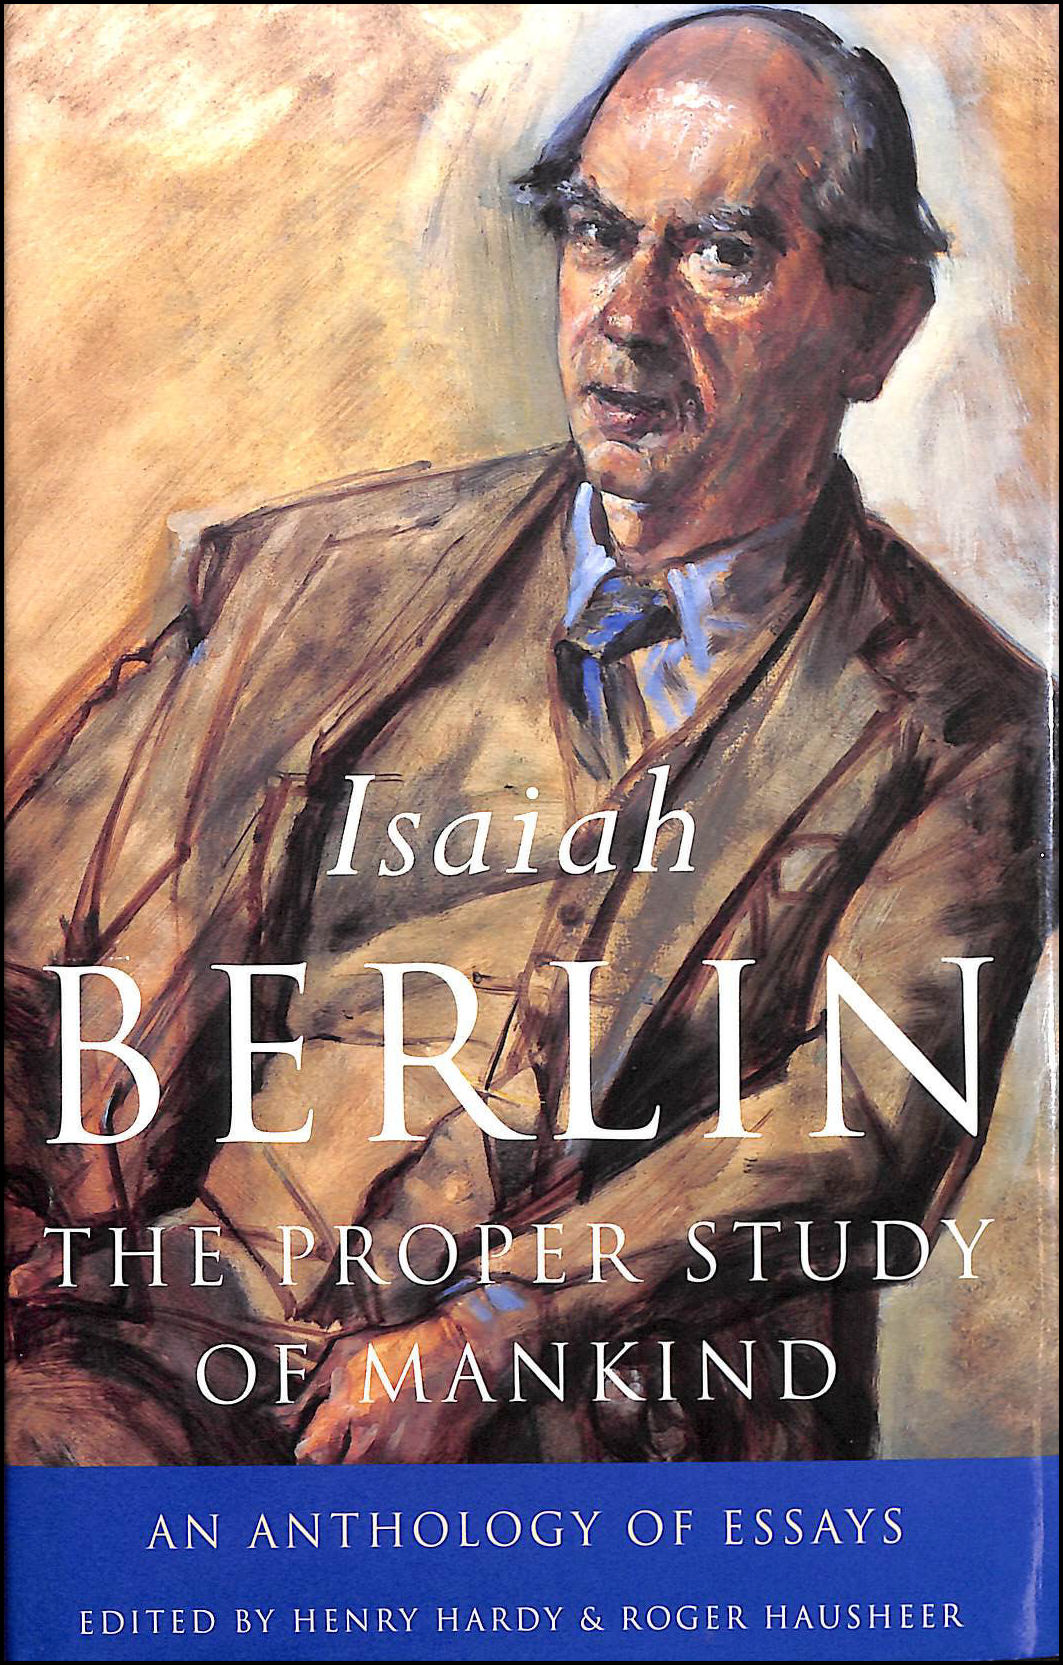 The Proper Study of Mankind: An Anthology of Essays, Isaiah Berlin; Henry Hardy [Editor]; Roger Hausheer [Editor]; Noel Annan [Foreword];